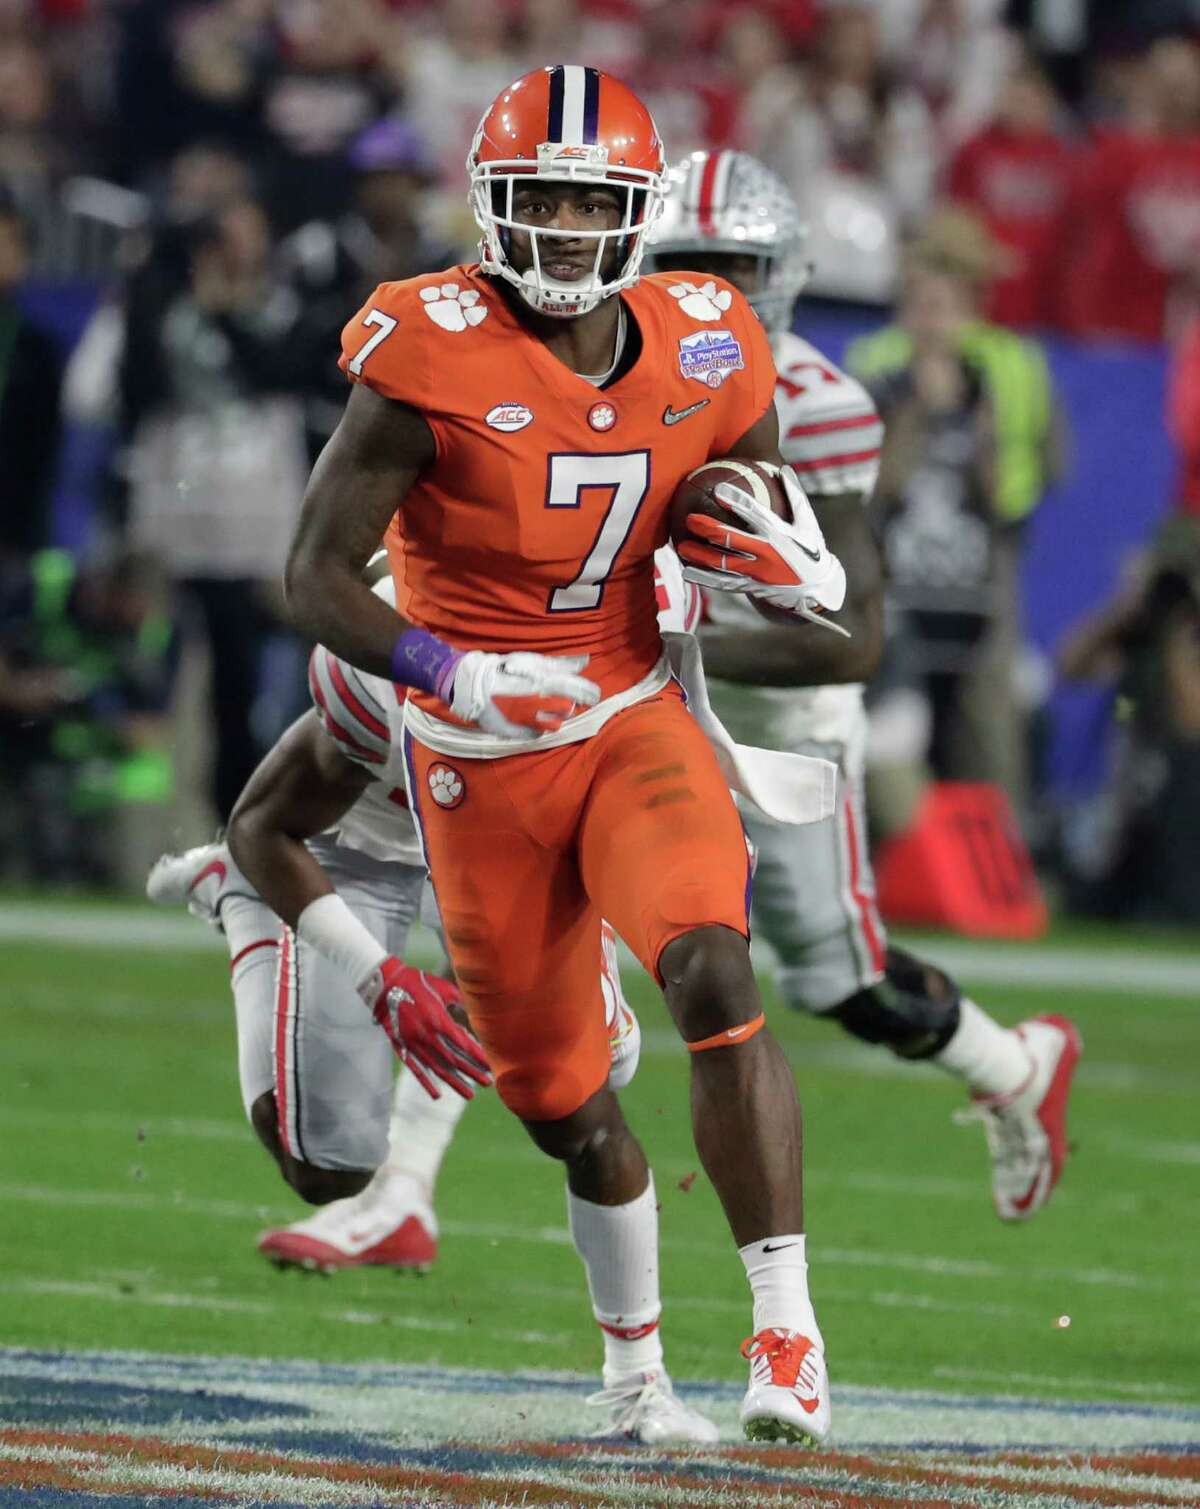 TOP FIVE 2. Mike Williams, 6-4, 218, 4.54, Clemson Big, strong, imposing downfield target, Williams provides an intriguing combination of size and leaping ability and has drawn comparisons to Mike Evans. Williams caught 84 passes for 1,171 yards and 10 touchdowns last season, proving he's overcome a fractured neck that nearly derailed his career when he hit his head against the goal post on a touchdown catch. Williams tracks down footballs well and is tough to stop in traffic. He has excellent body control and has soft hands. Would ideally be a little bit faster and more sudden in the open field.